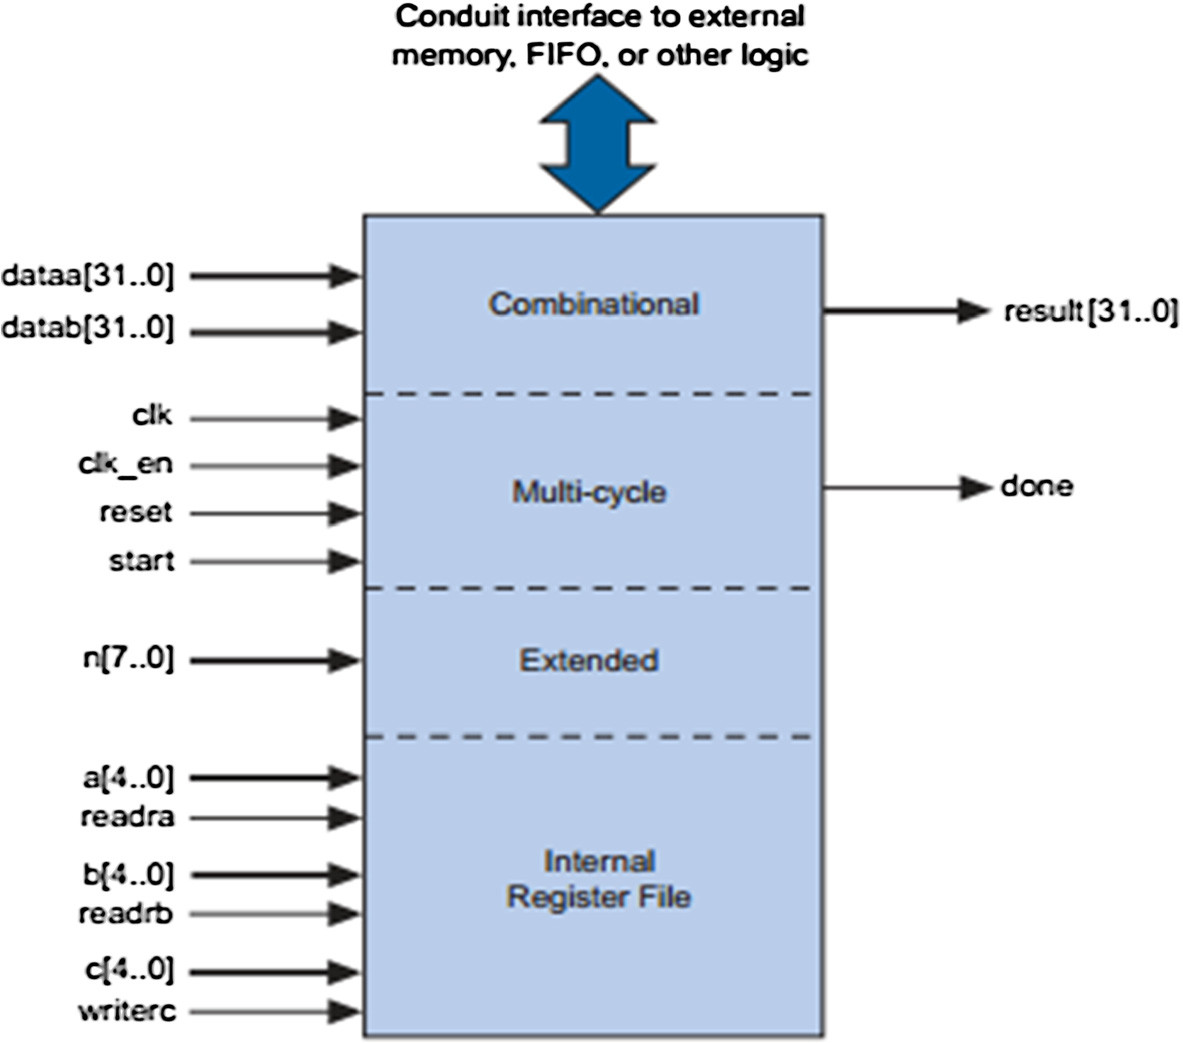 https://static-content.springer.com/image/art%3A10.1186%2F1687-6180-2013-118/MediaObjects/13634_2013_Article_503_Fig6_HTML.jpg